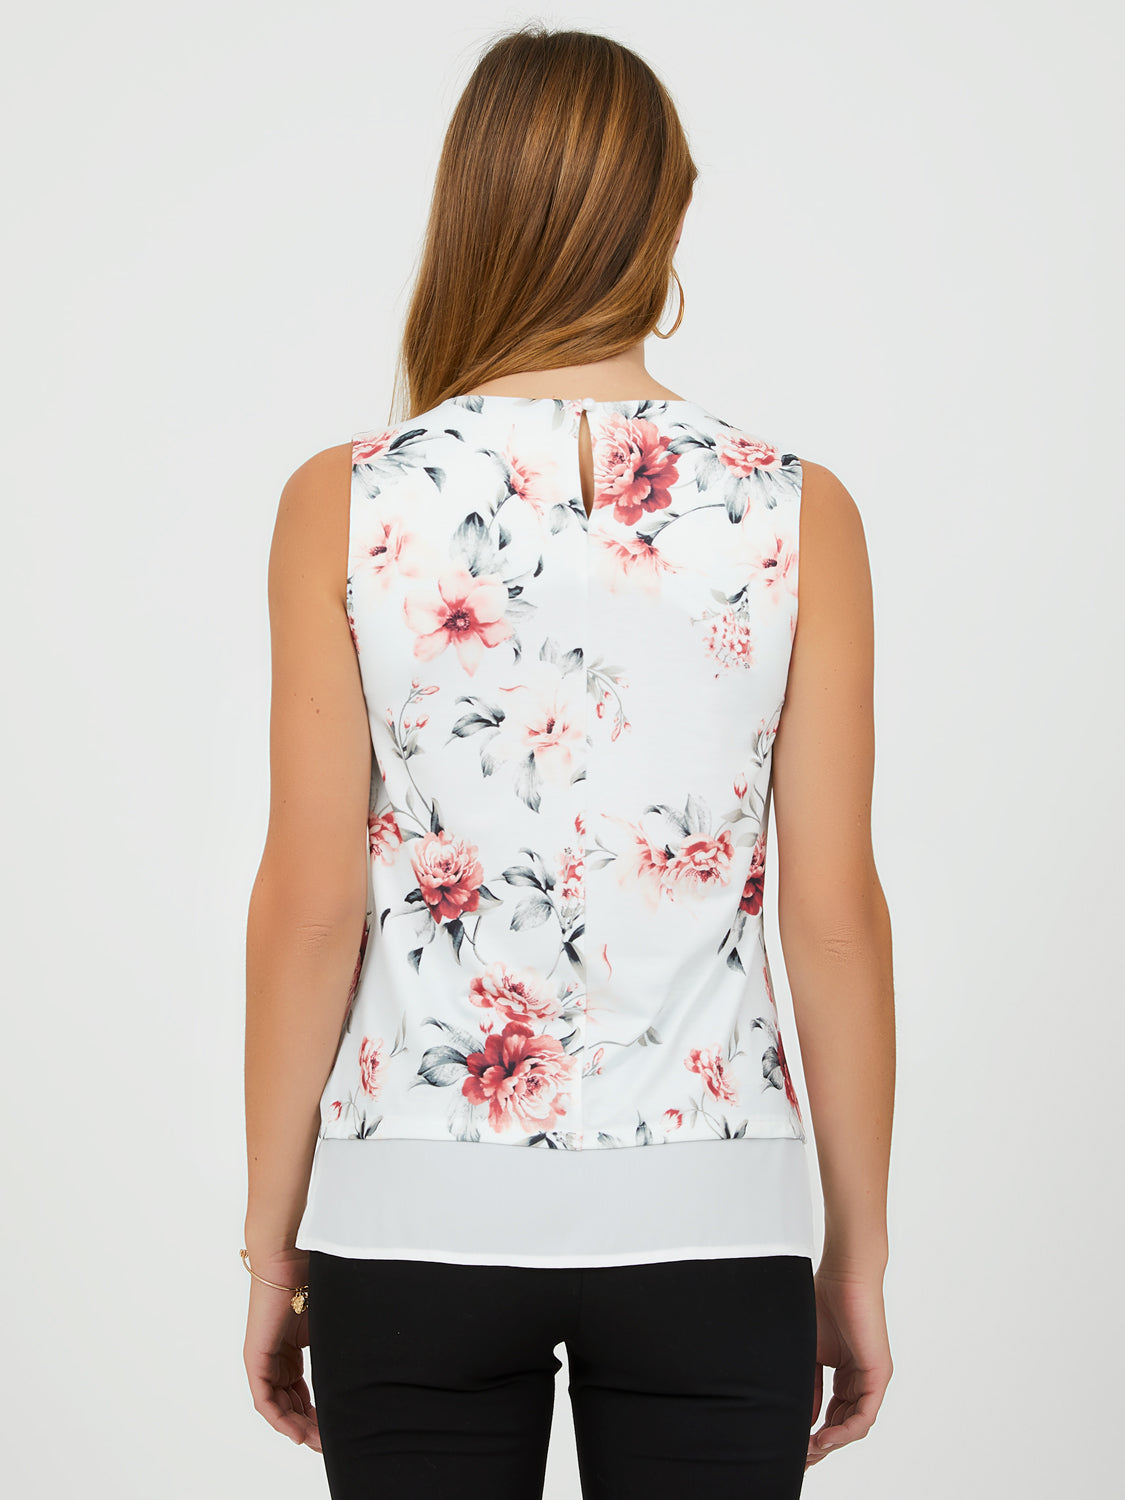 Sleeveless 2-Fer Top with Chiffon Underlay